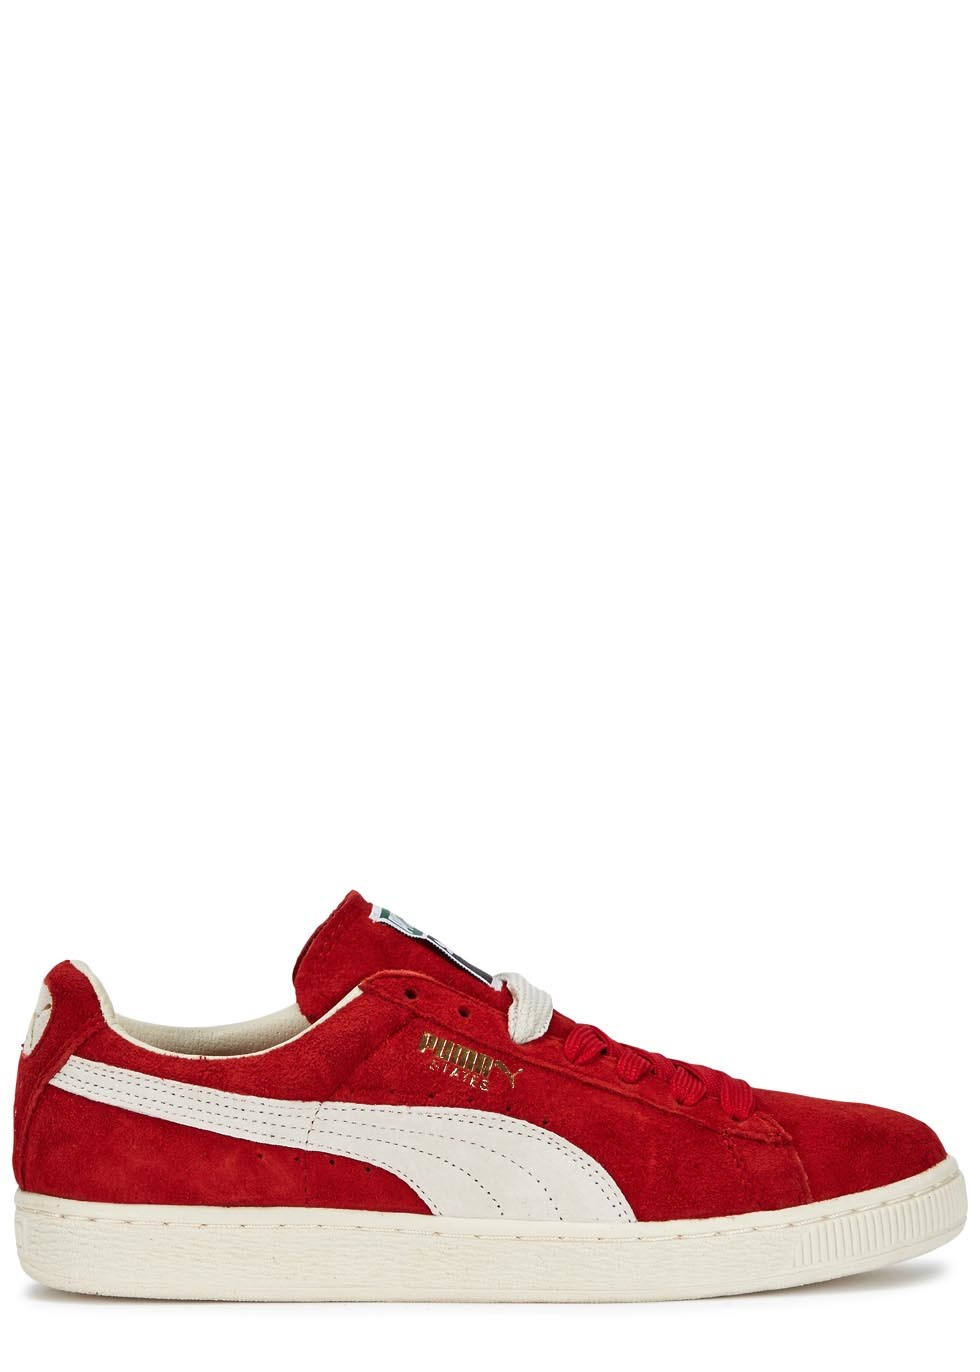 Red Suede Trainers - secondary colour: white; predominant colour: true red; occasions: casual, activity; material: suede; heel height: flat; toe: round toe; style: trainers; finish: plain; pattern: colourblock; shoe detail: moulded soul; season: a/w 2015